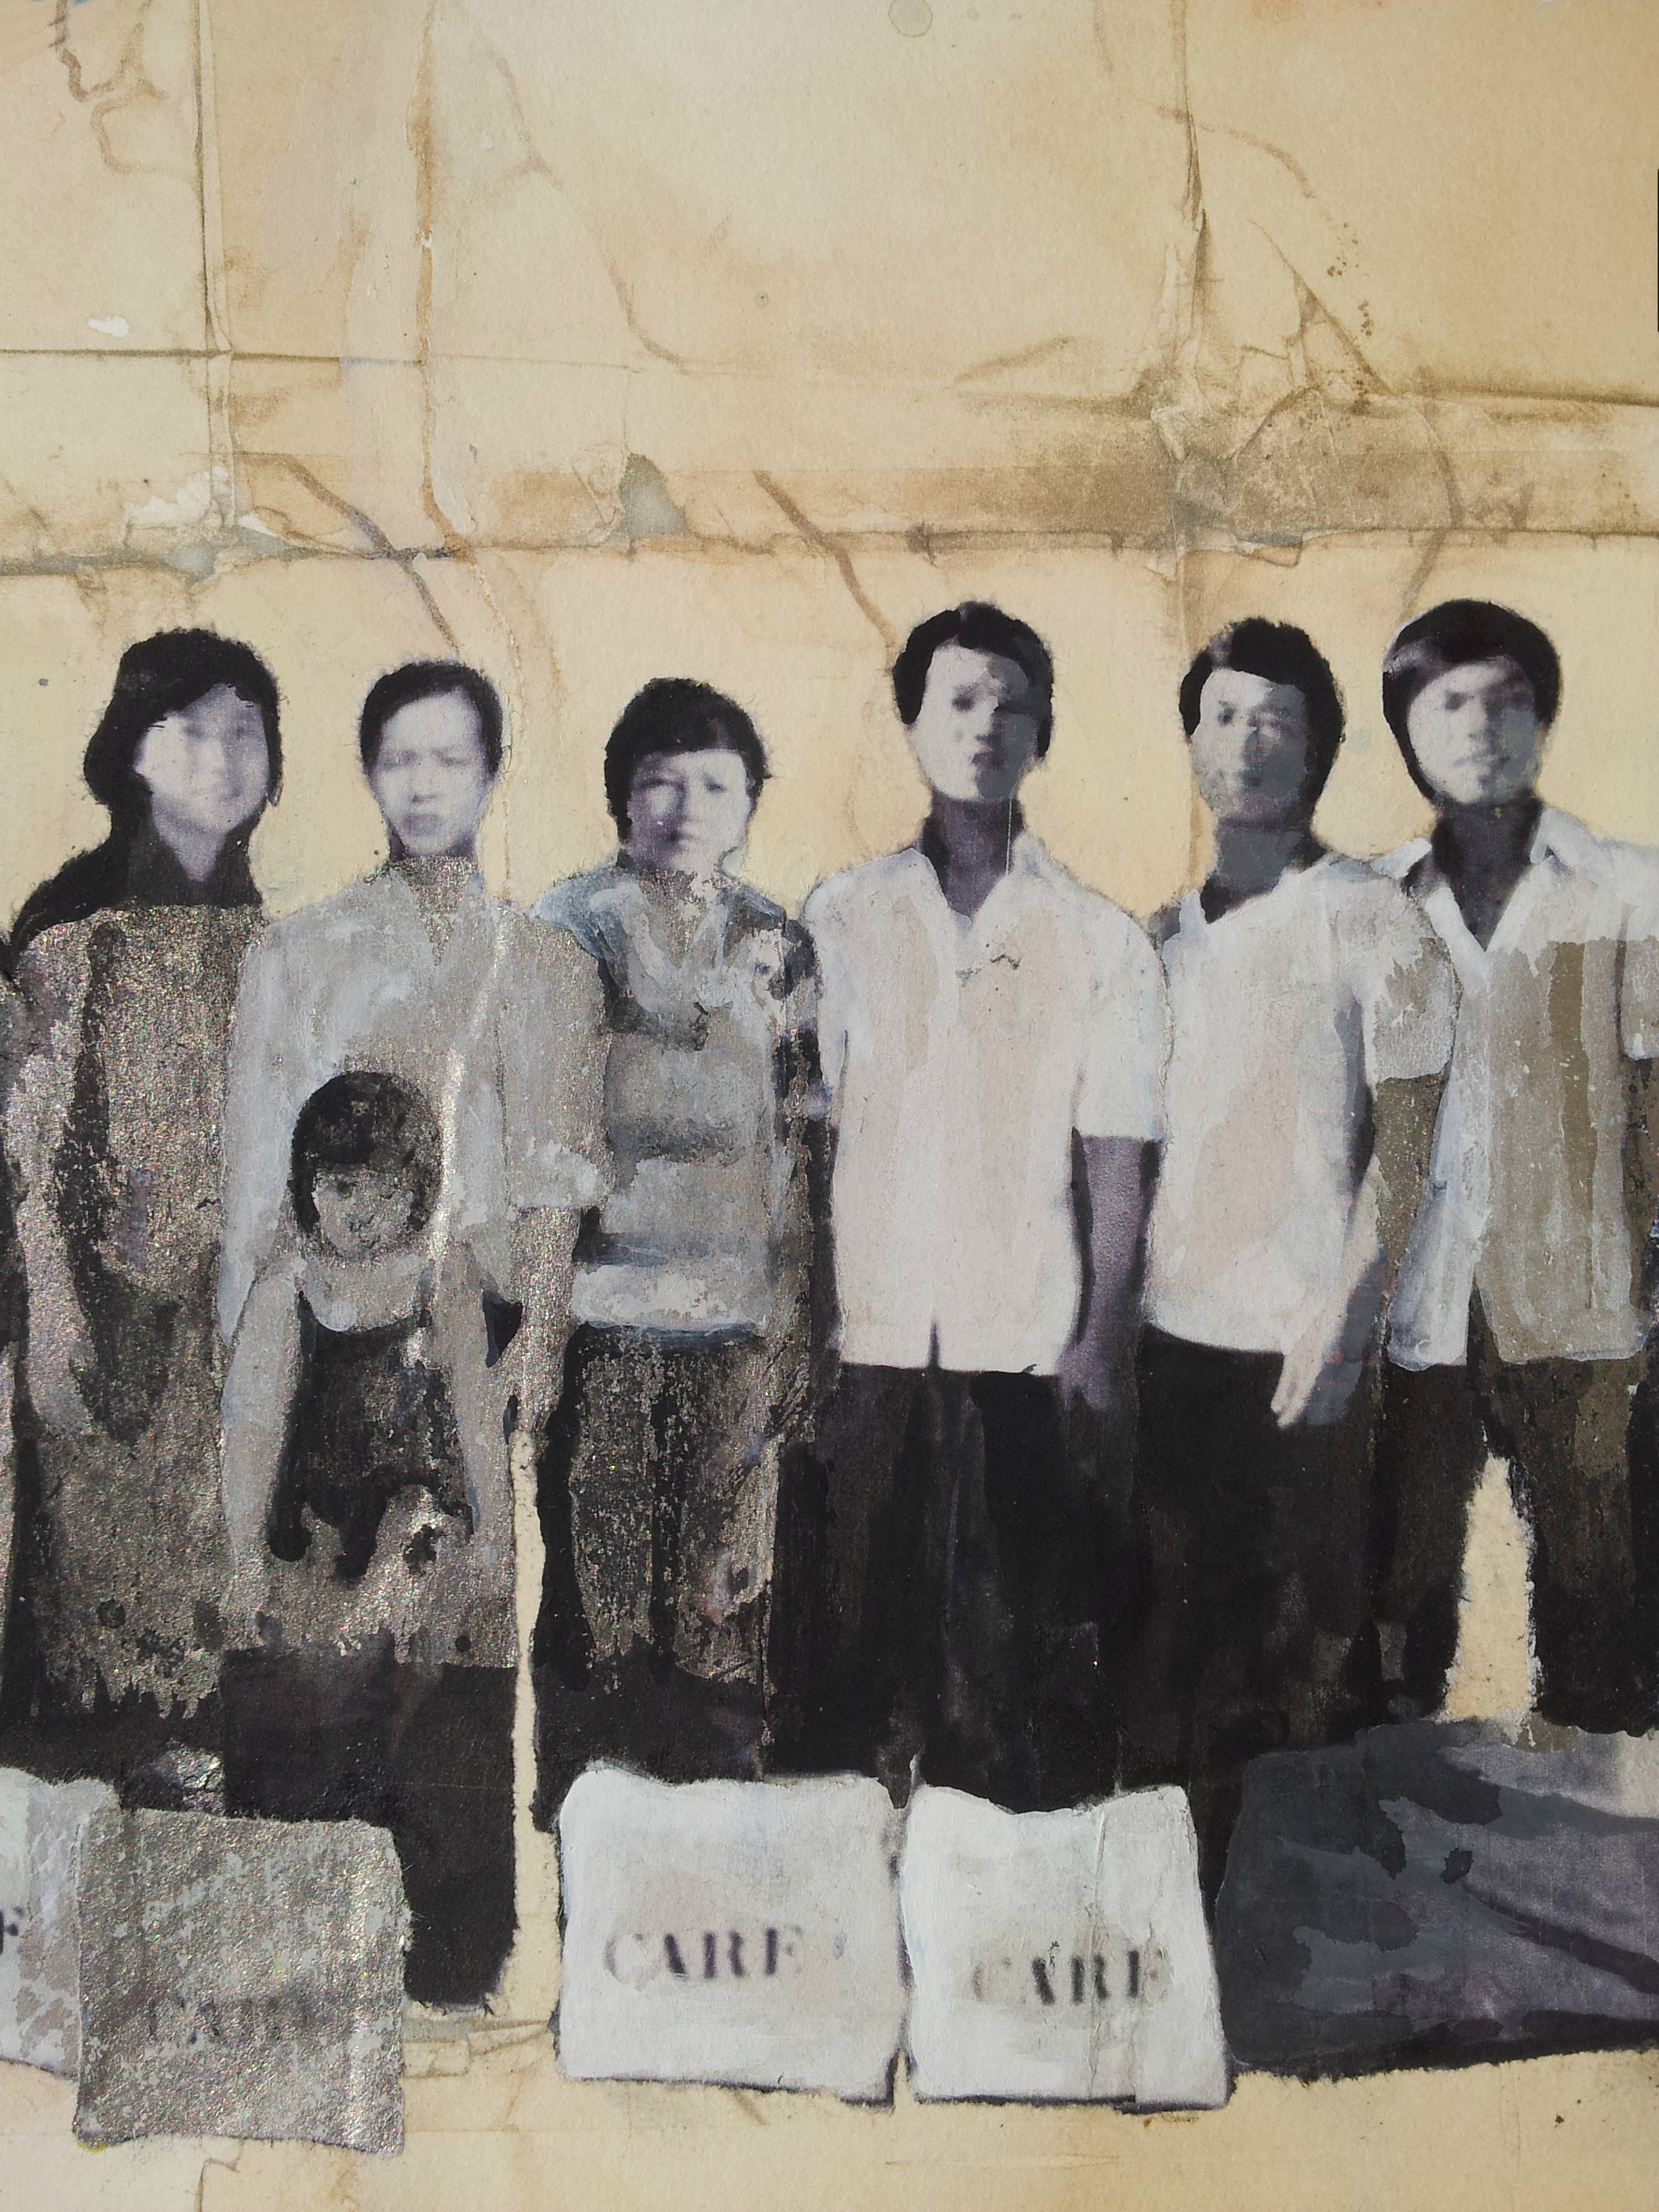 Tràn Vân Dũng (second from the right)and some of those who were on his boat